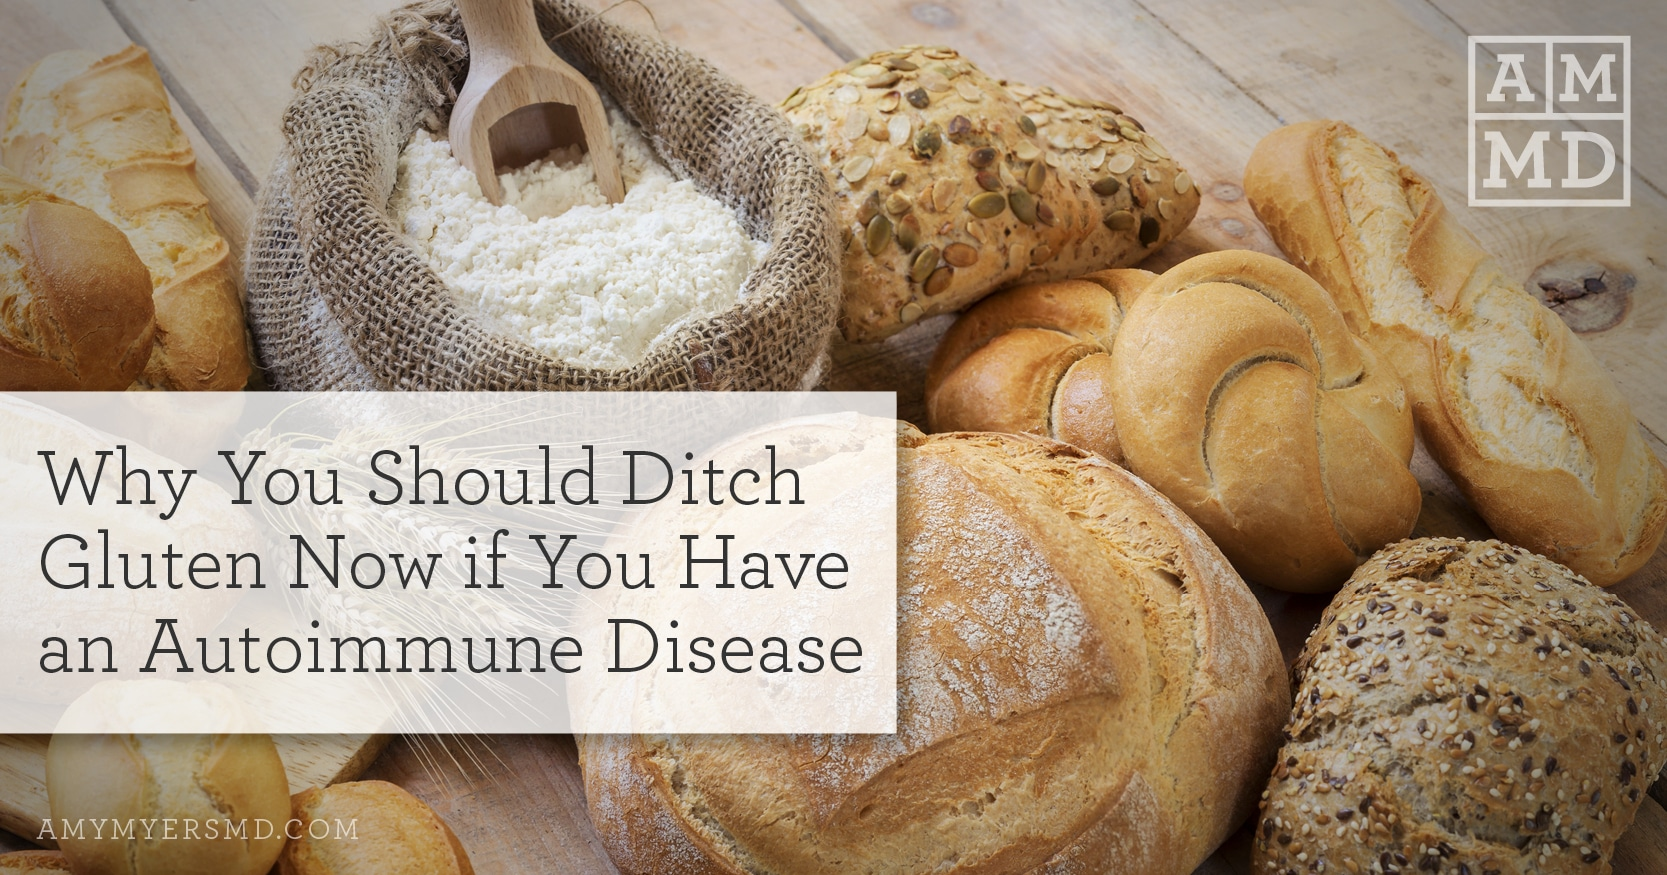 Avoid Gluten if You Have an Autoimmune Disease - Bread and Flour - Featured Image - Amy Myers MD